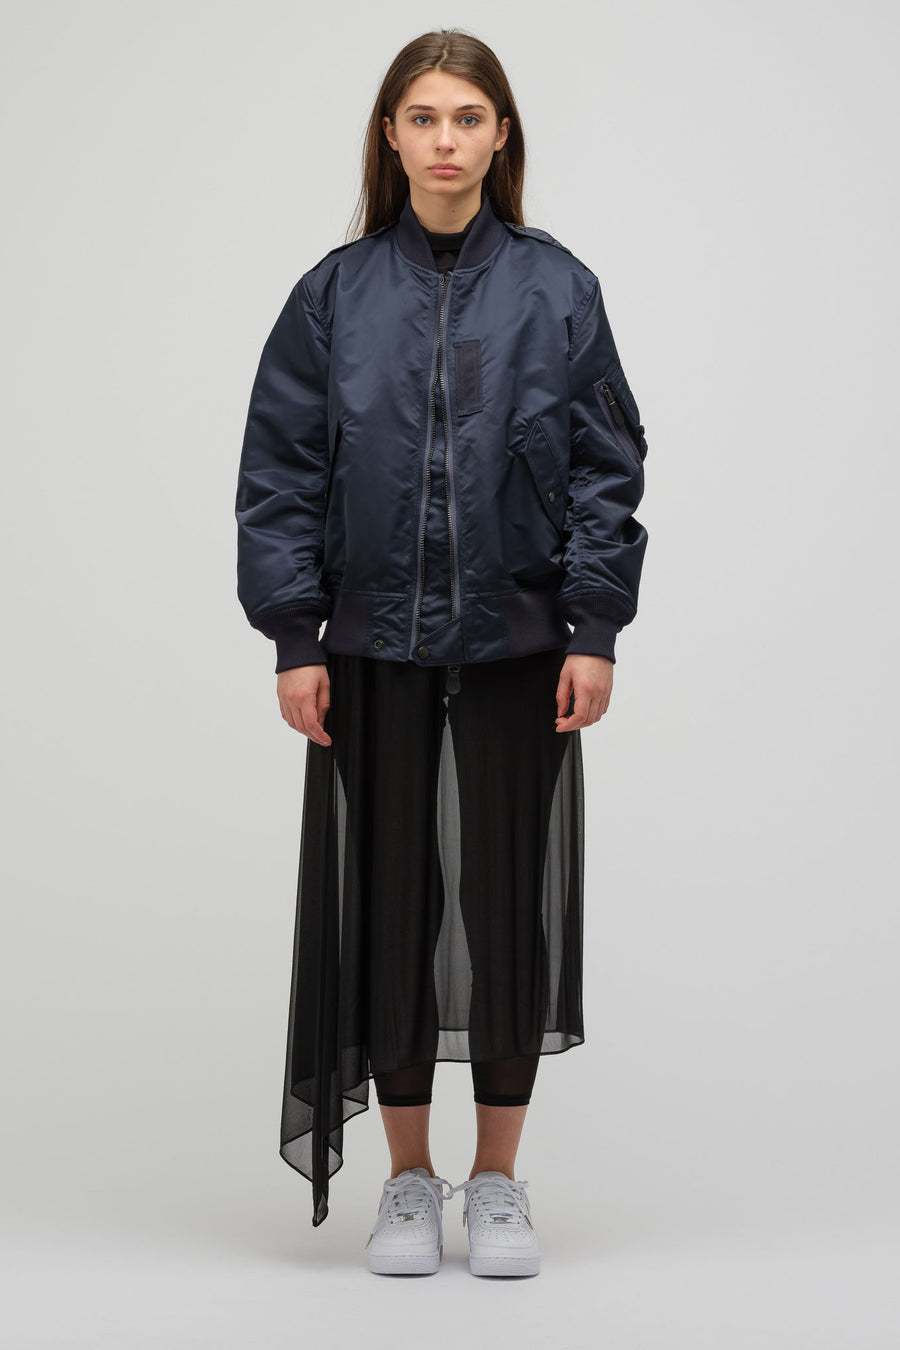 HYKE Long Bomber Jacket in Navy - Notre